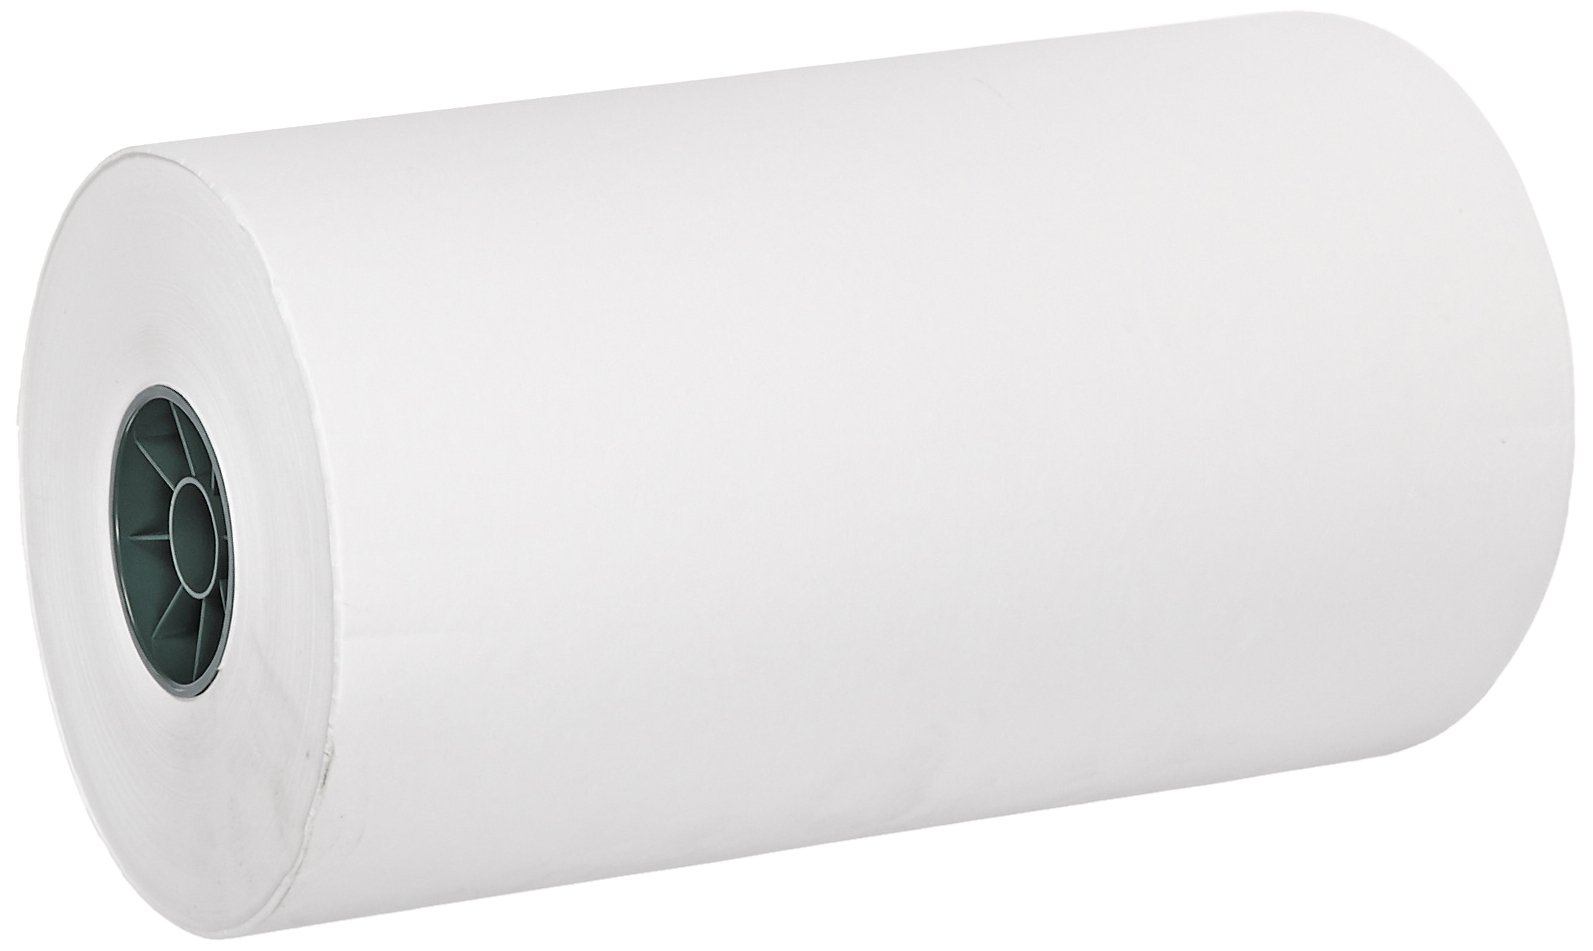 Aviditi Butcher Paper Sheets Pack of 1250 18 x 24 BPS182440W